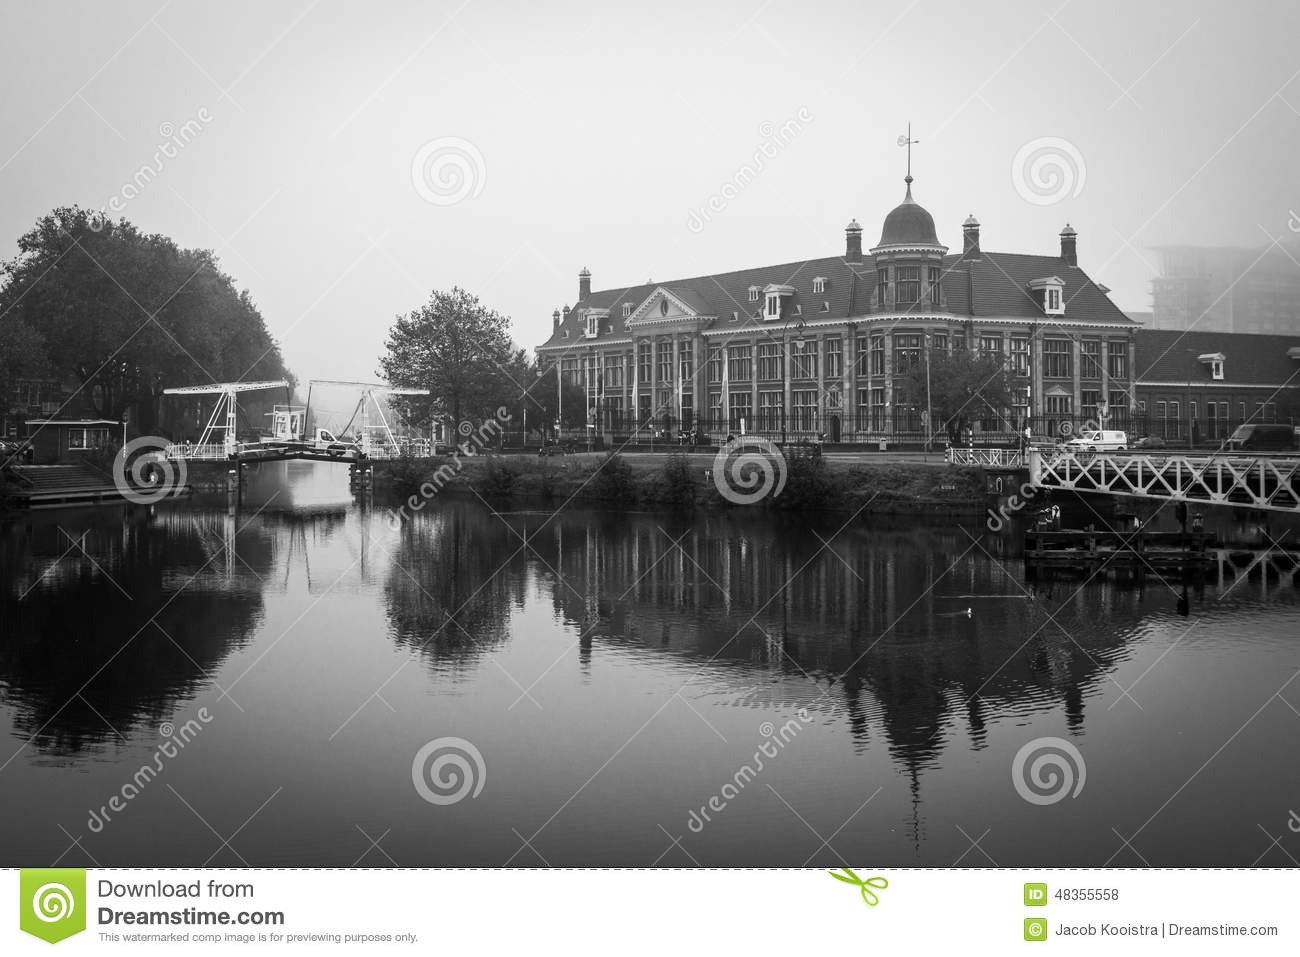 Royal dutch mint rijksmunt building utrecht in black and white on a foggy day